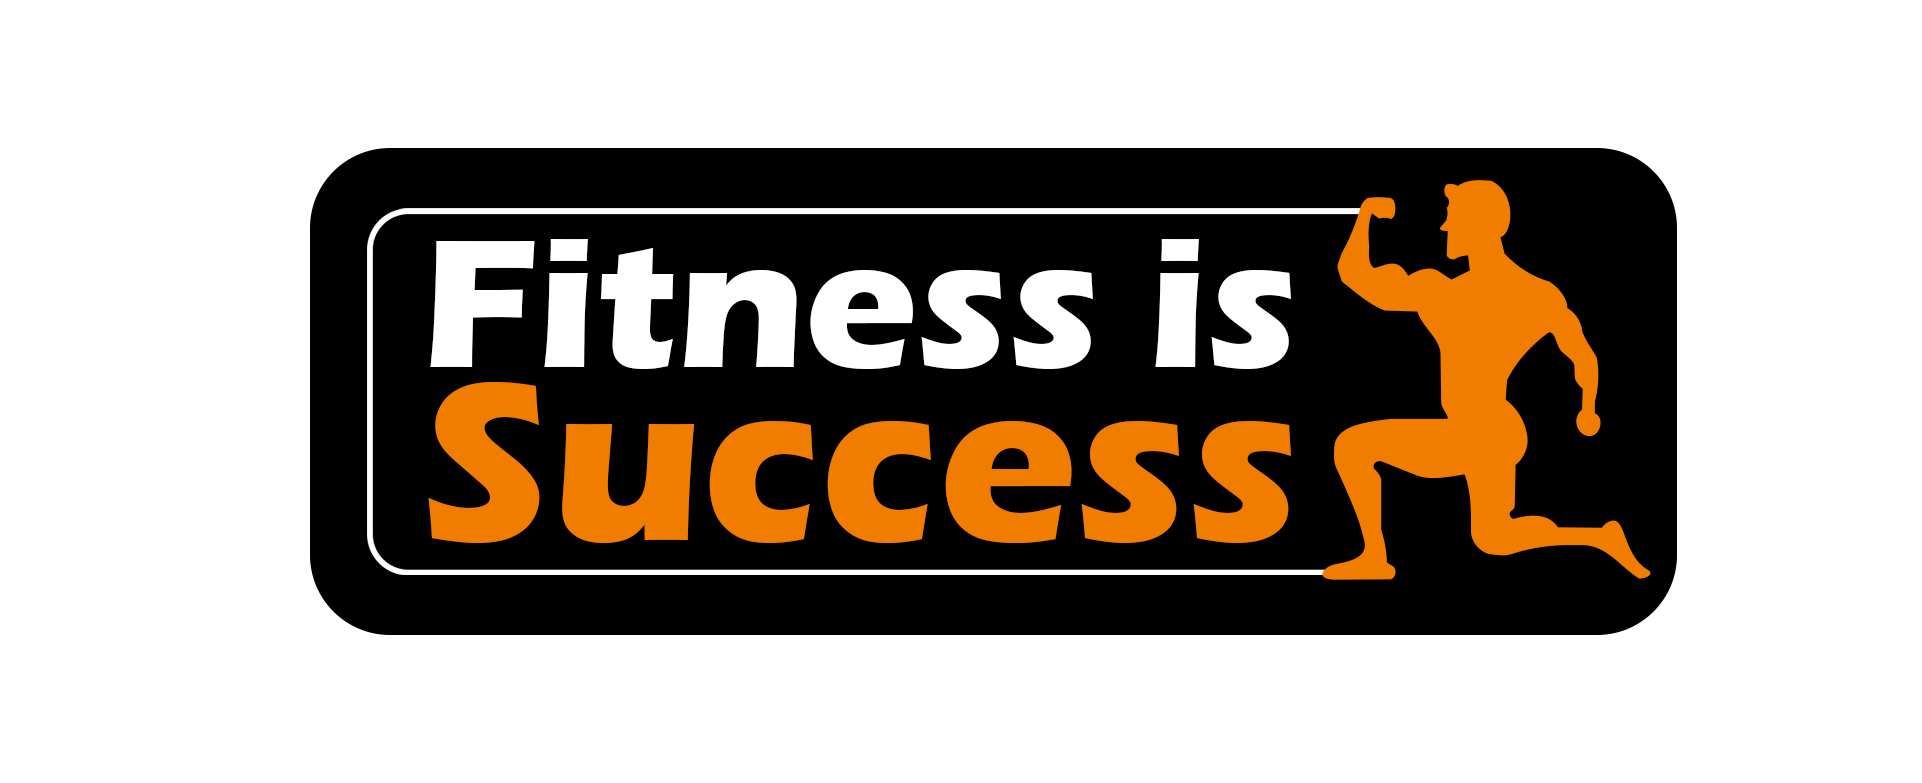 Contact | Fitness is Success